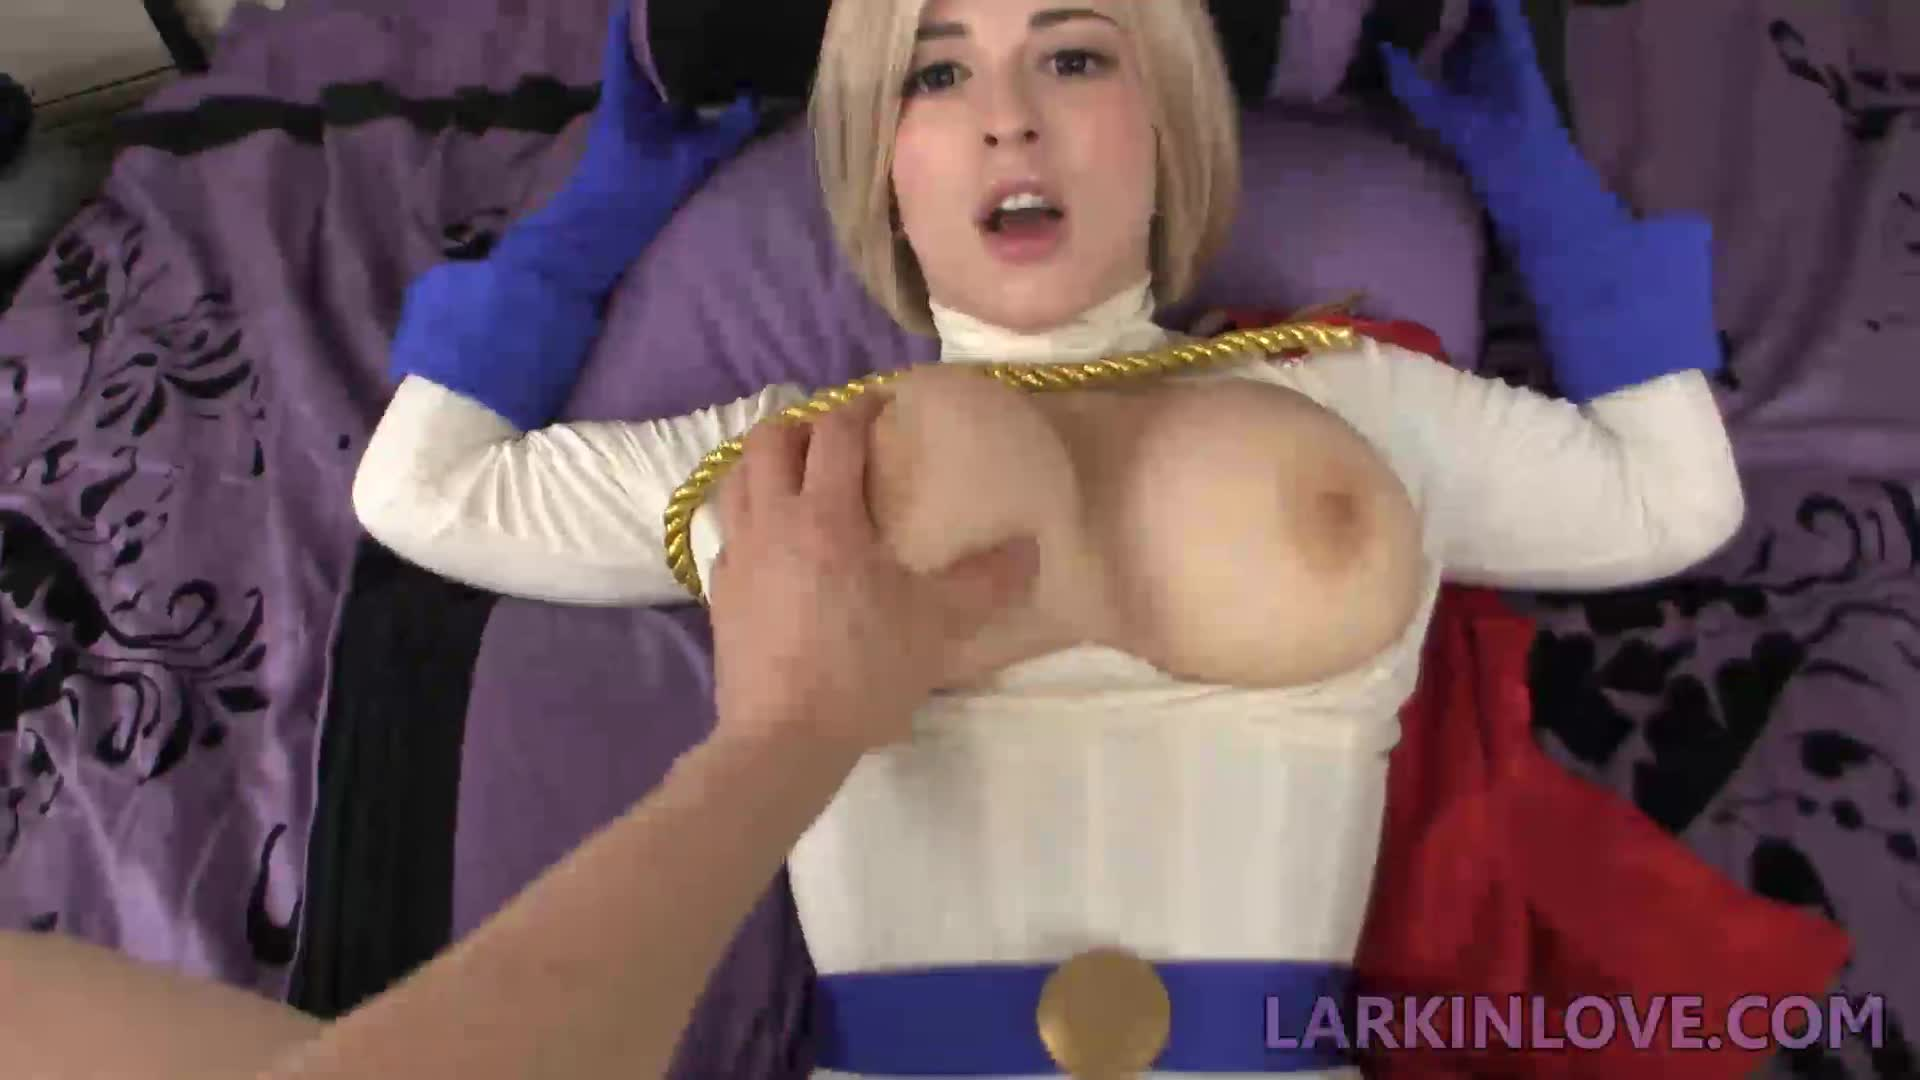 Power girl cosplay titty fuck picture 138